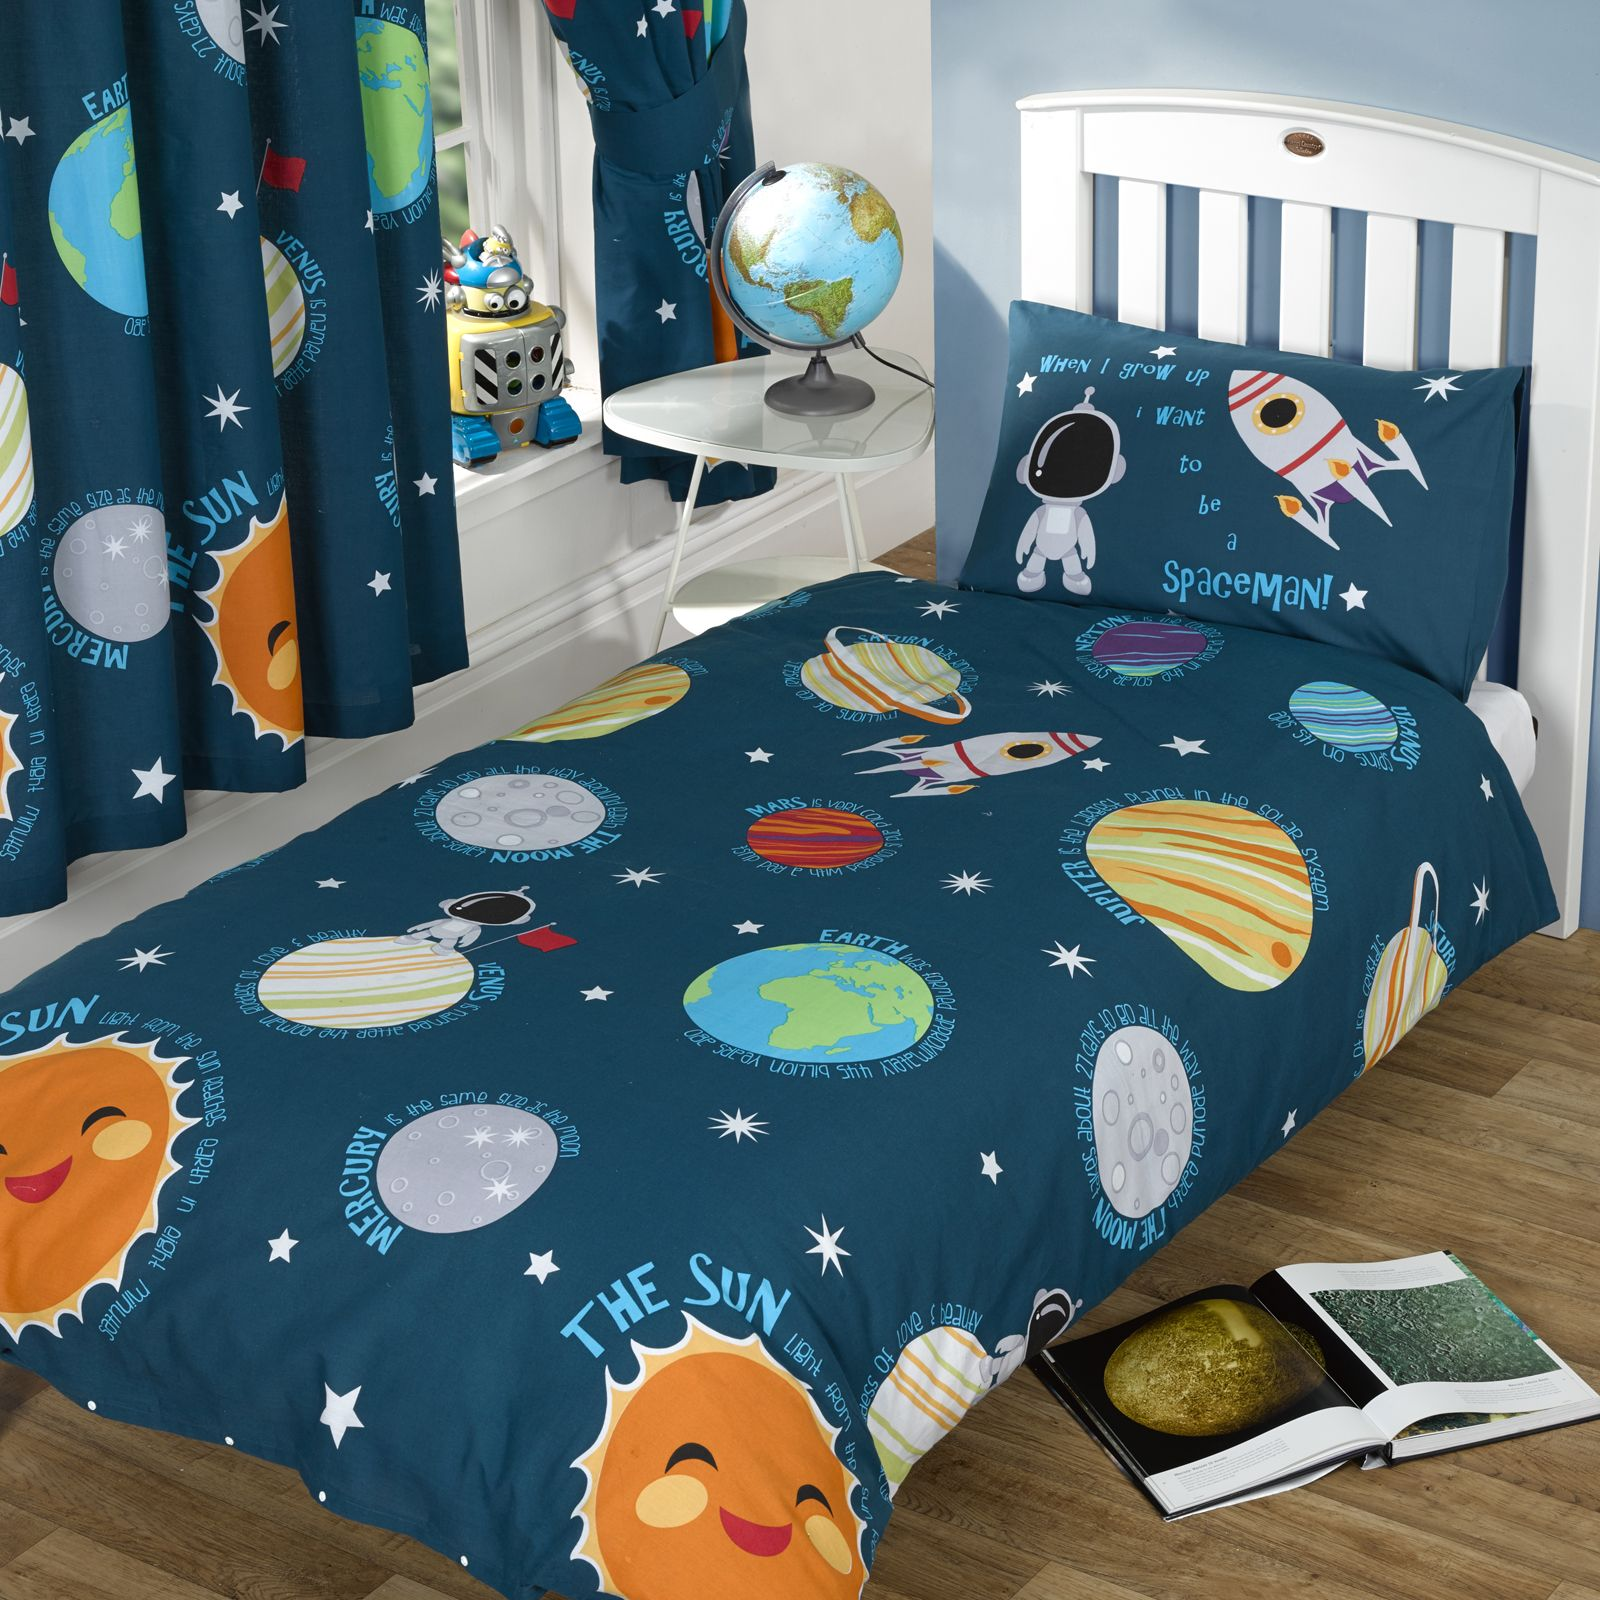 Bed cover in bedding ebay - Character And Themed Single Duvet Cover Kids Bedding